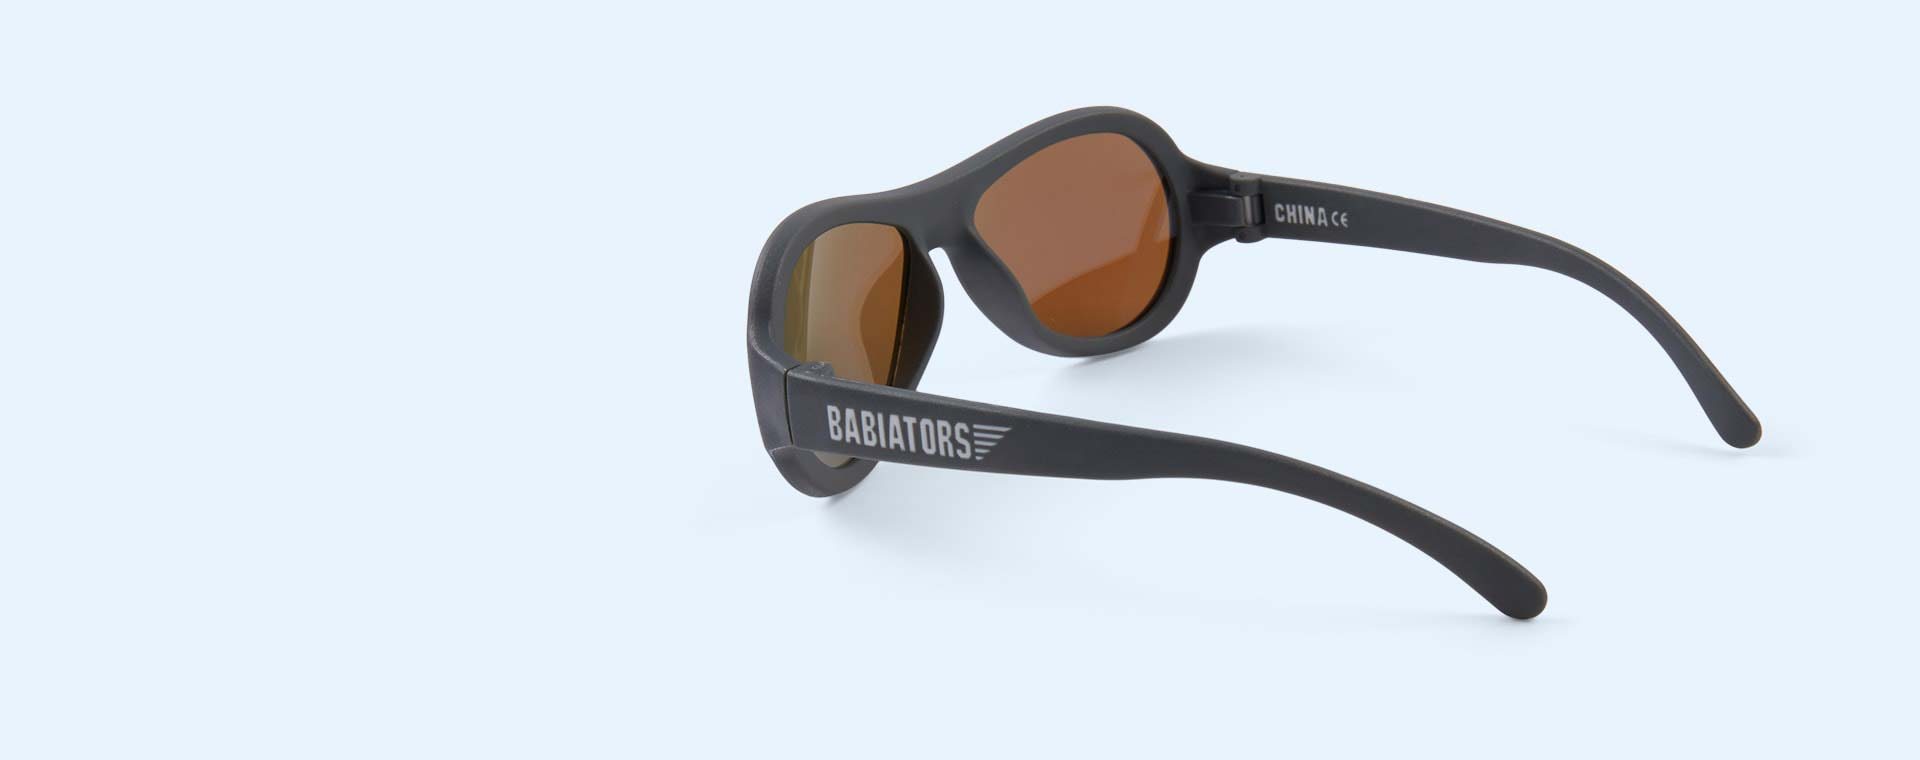 Blue Steel Babiators Premium Aviator